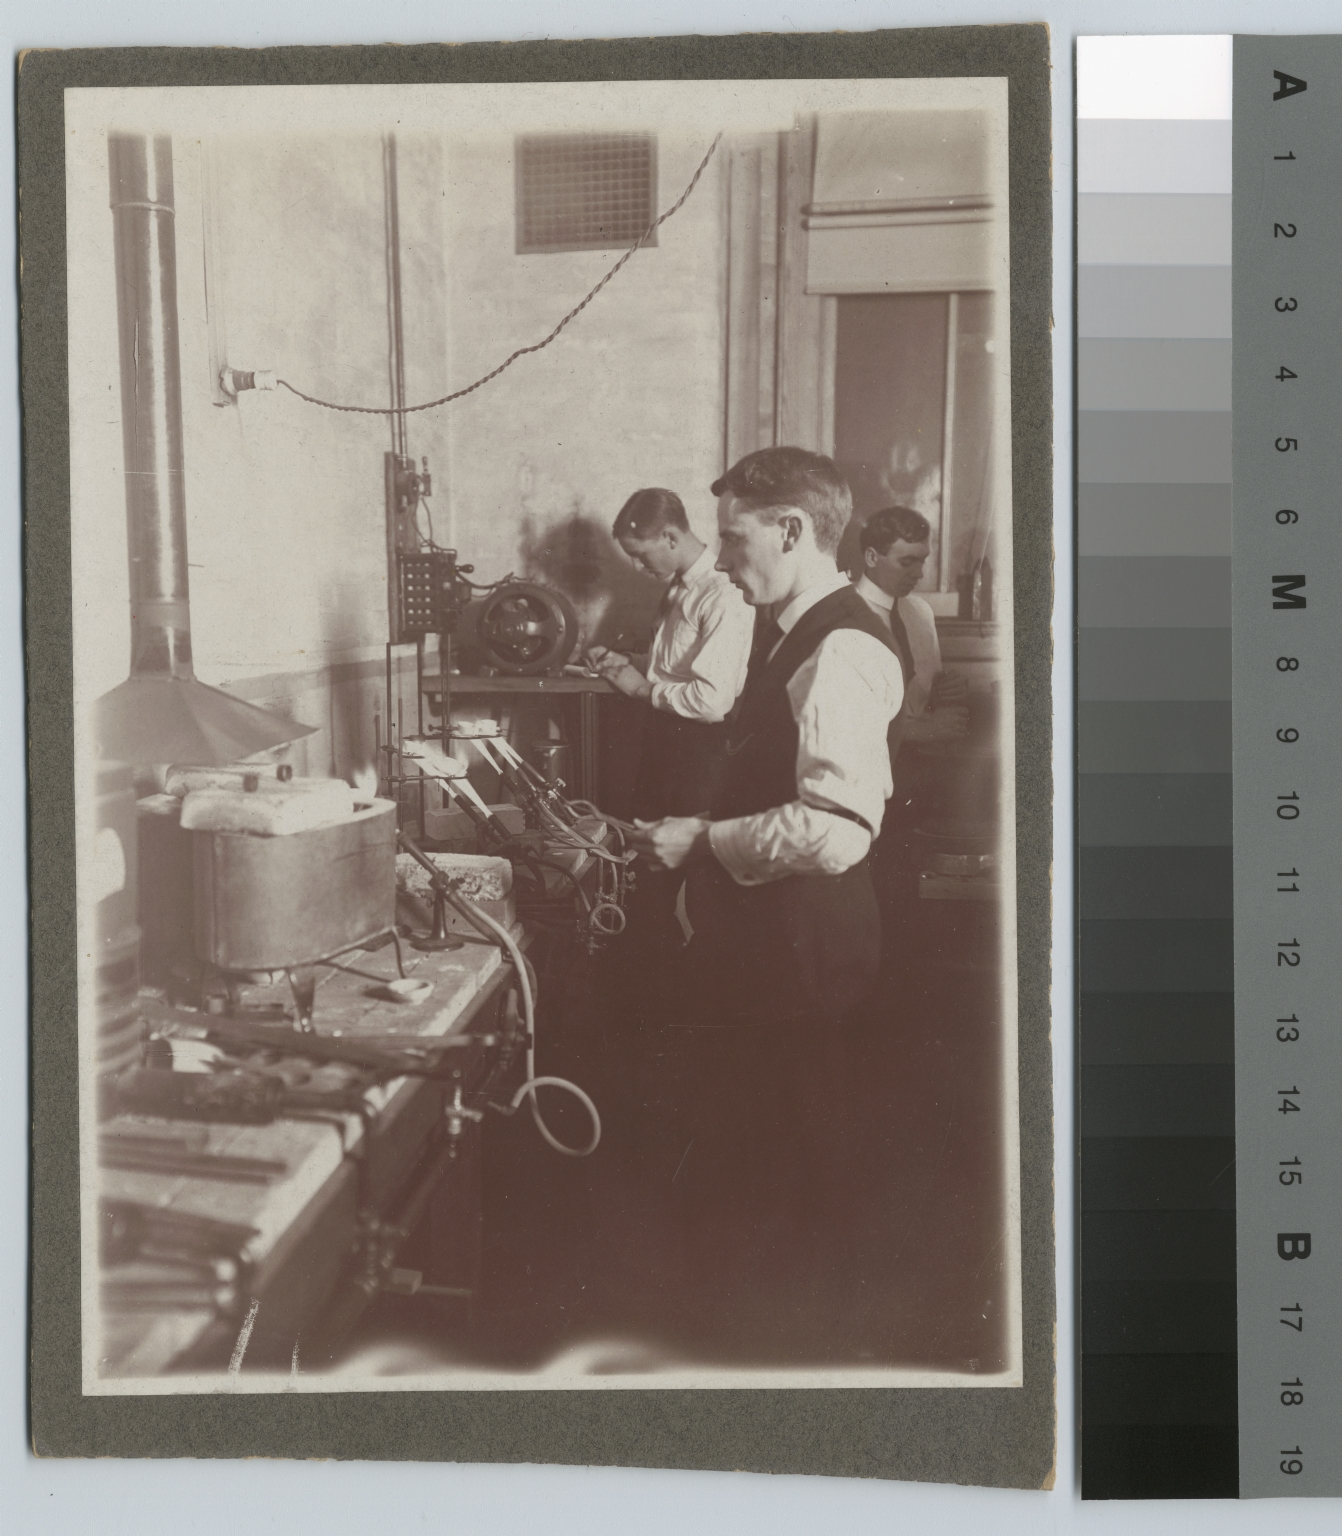 Academics, Chemistry, A Rochester Athenaeum and Mechanics Institute chemstry laboratory, [1891-1920]